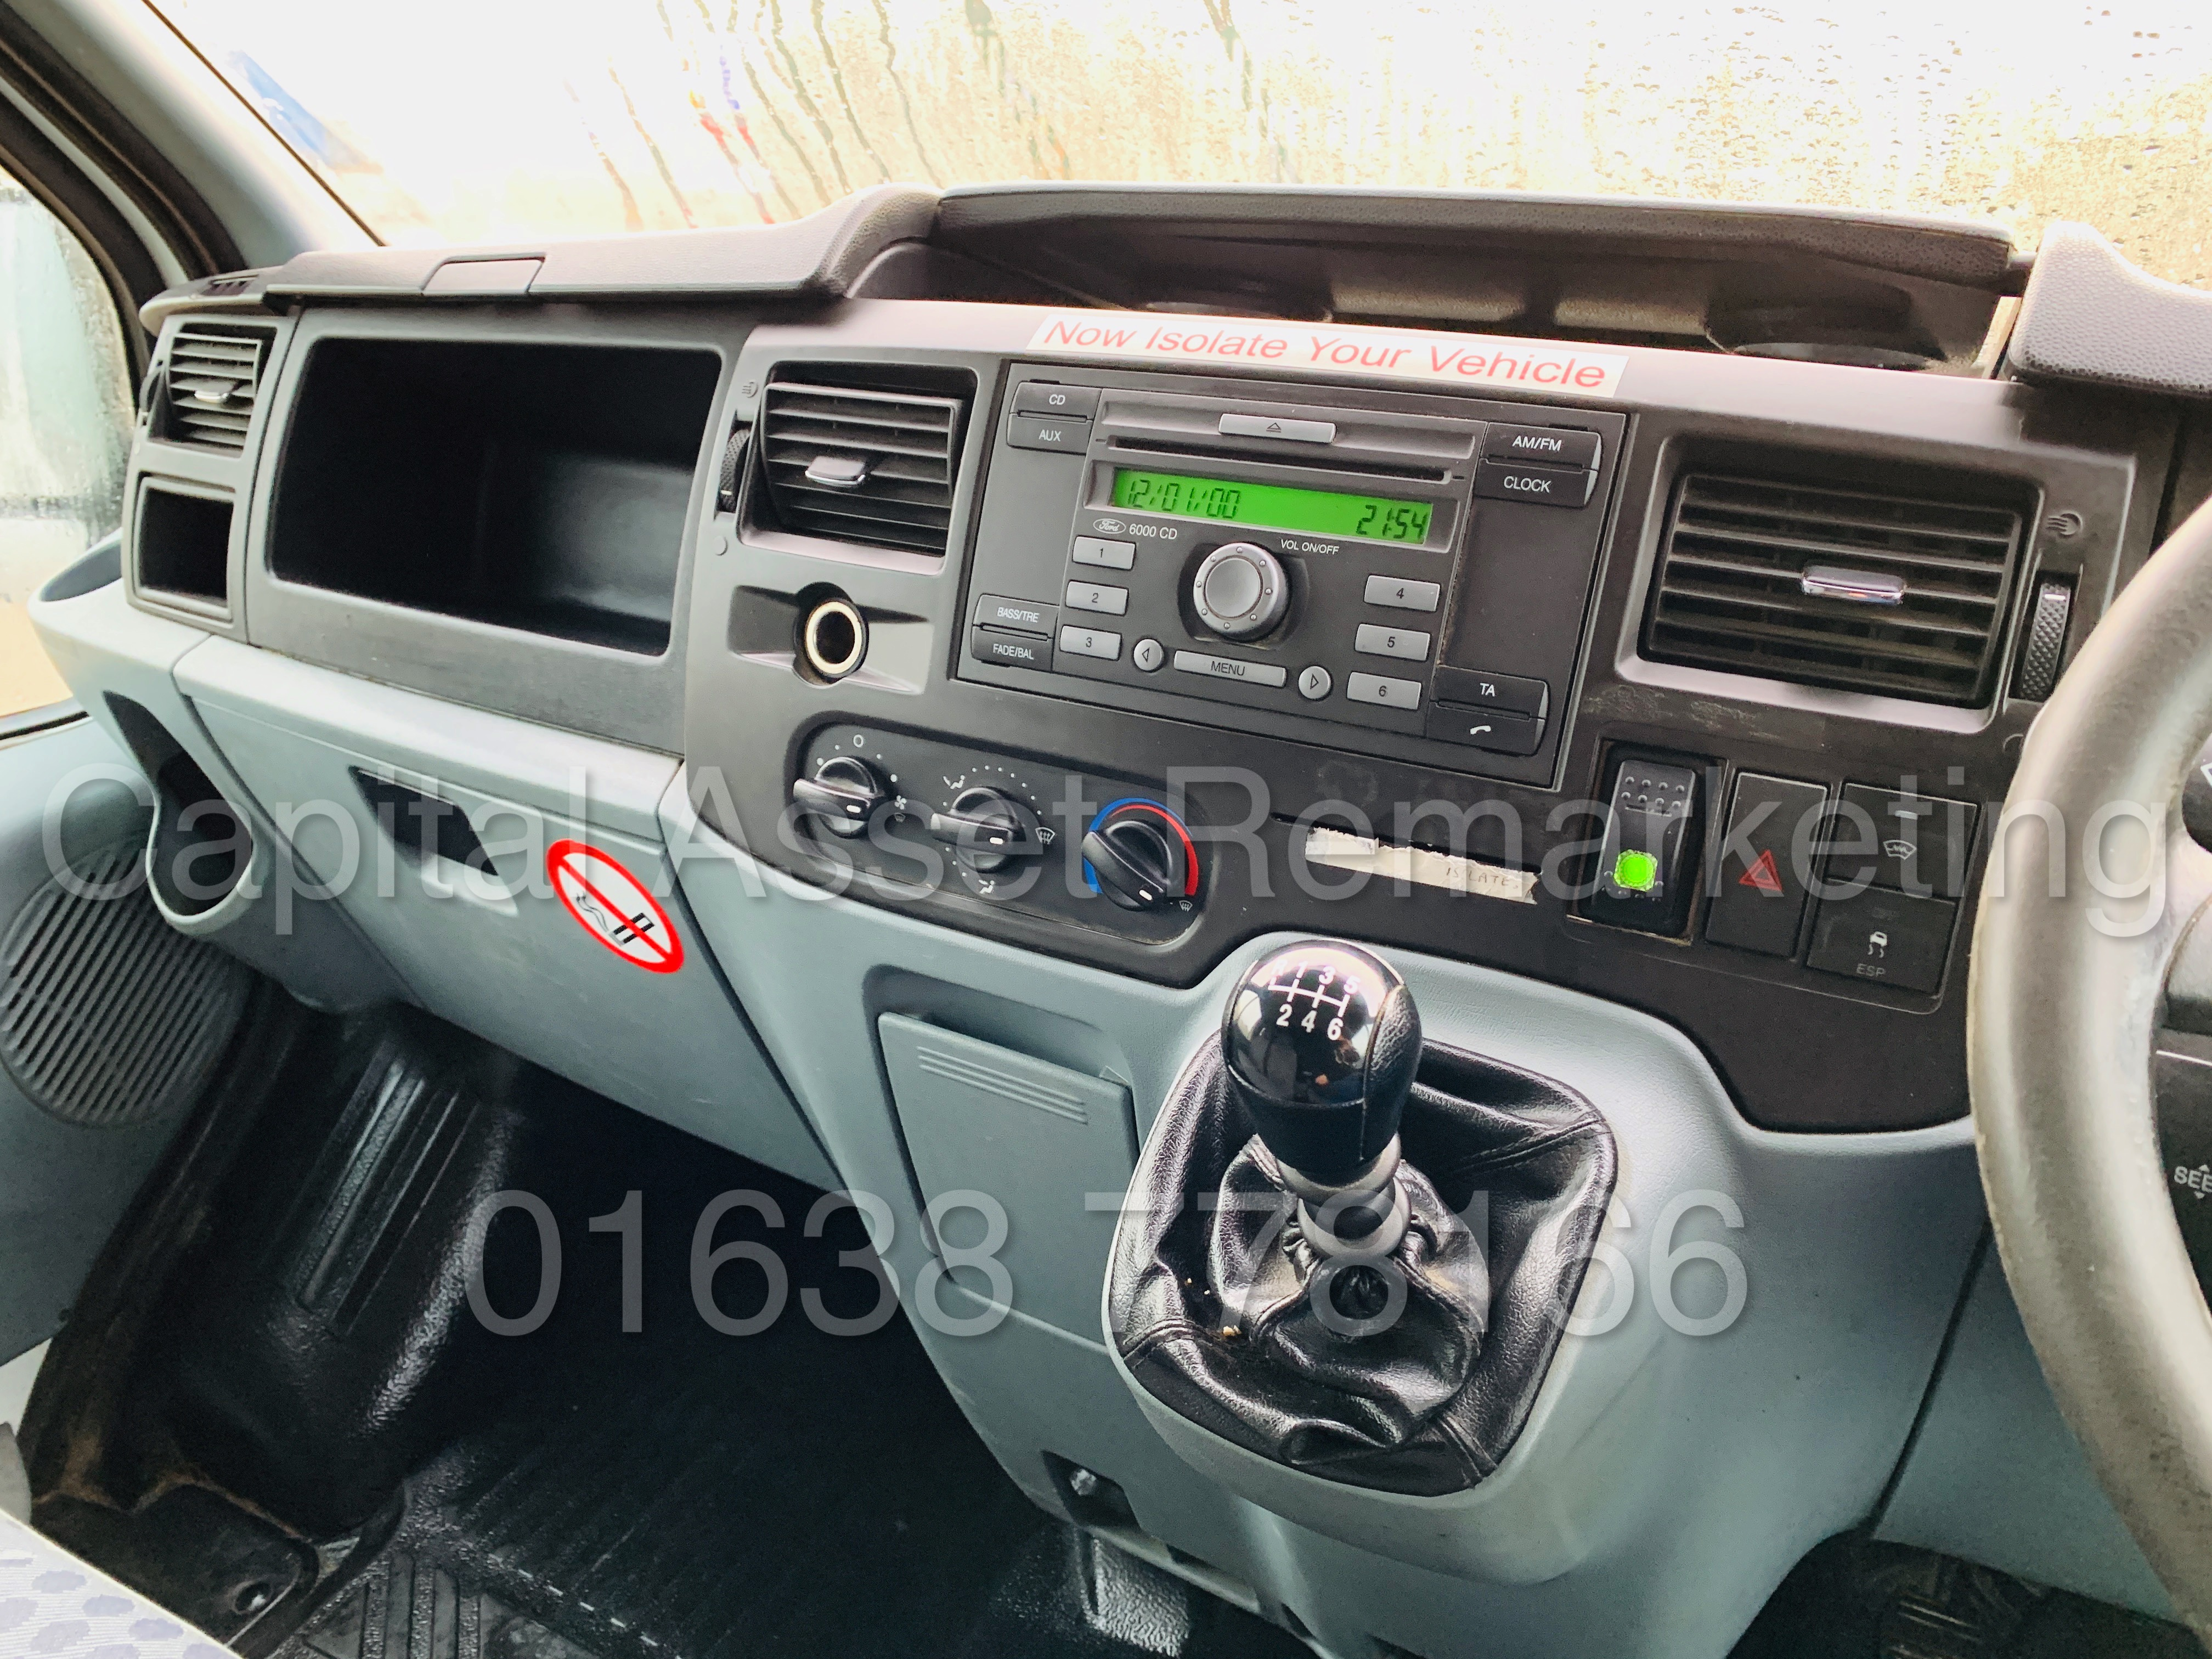 FORD TRANSIT T350 *LWB - 7 SEATER MESSING UNIT* (2014 MODEL) '2.4 TDCI - 6 SPEED' *ON BOARD TOILET* - Image 38 of 44